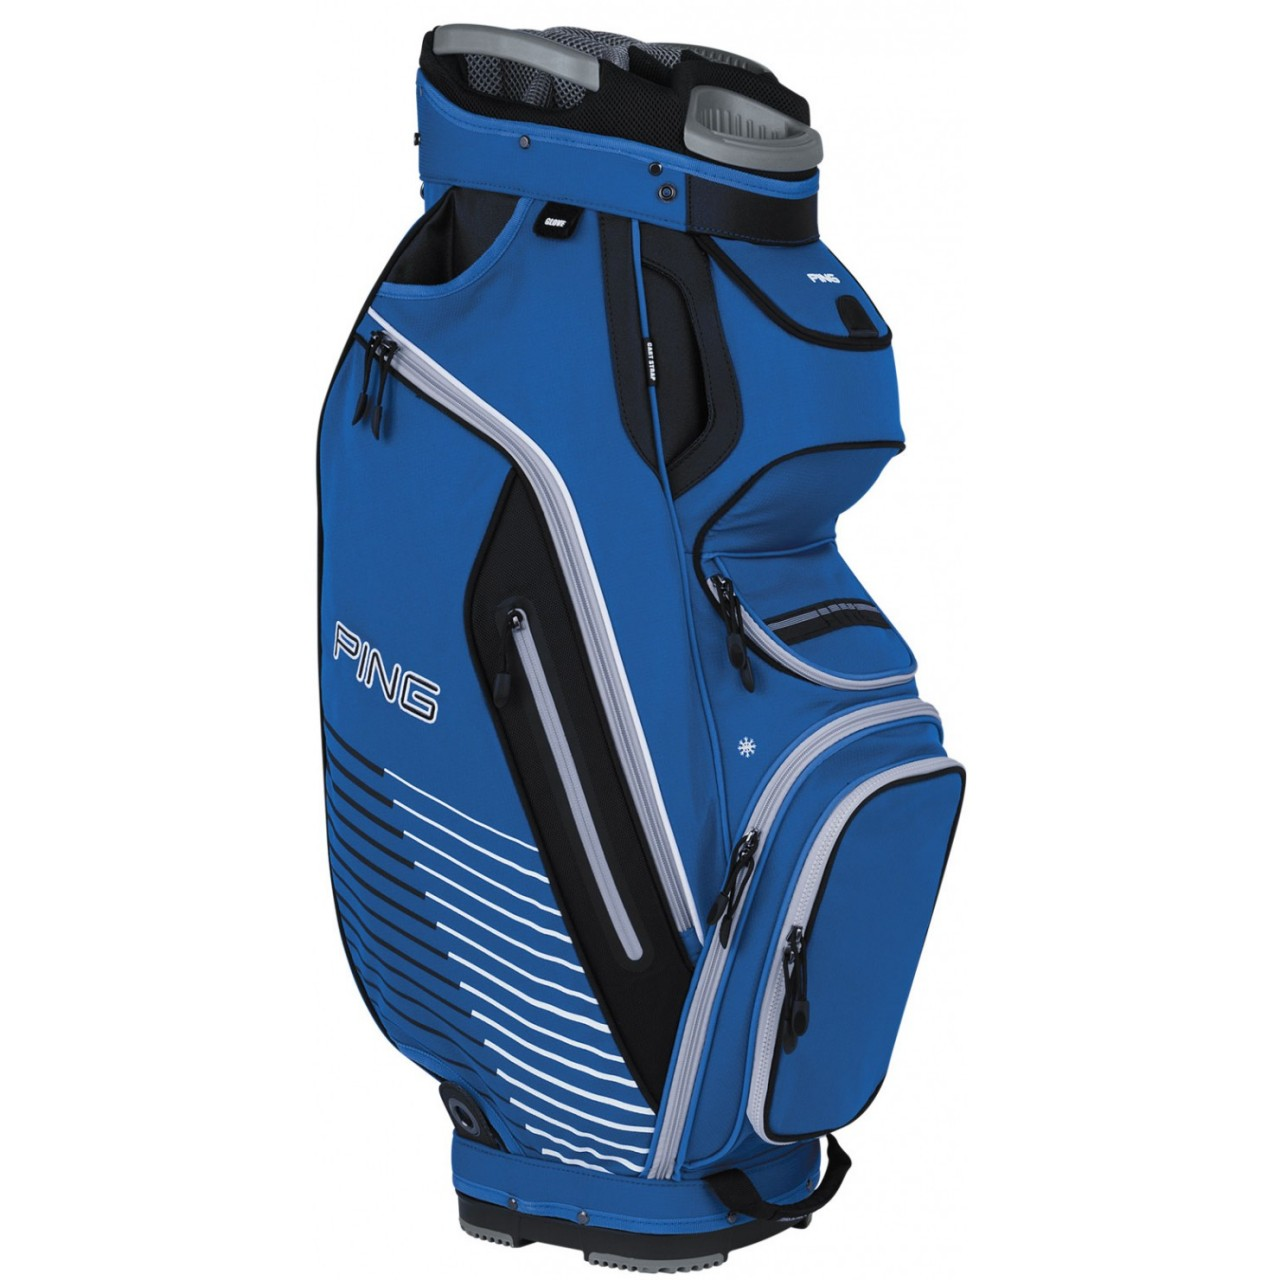 dad643a5d909 PING PIONEER CART BAG BLUE - Golf Factory Outlet